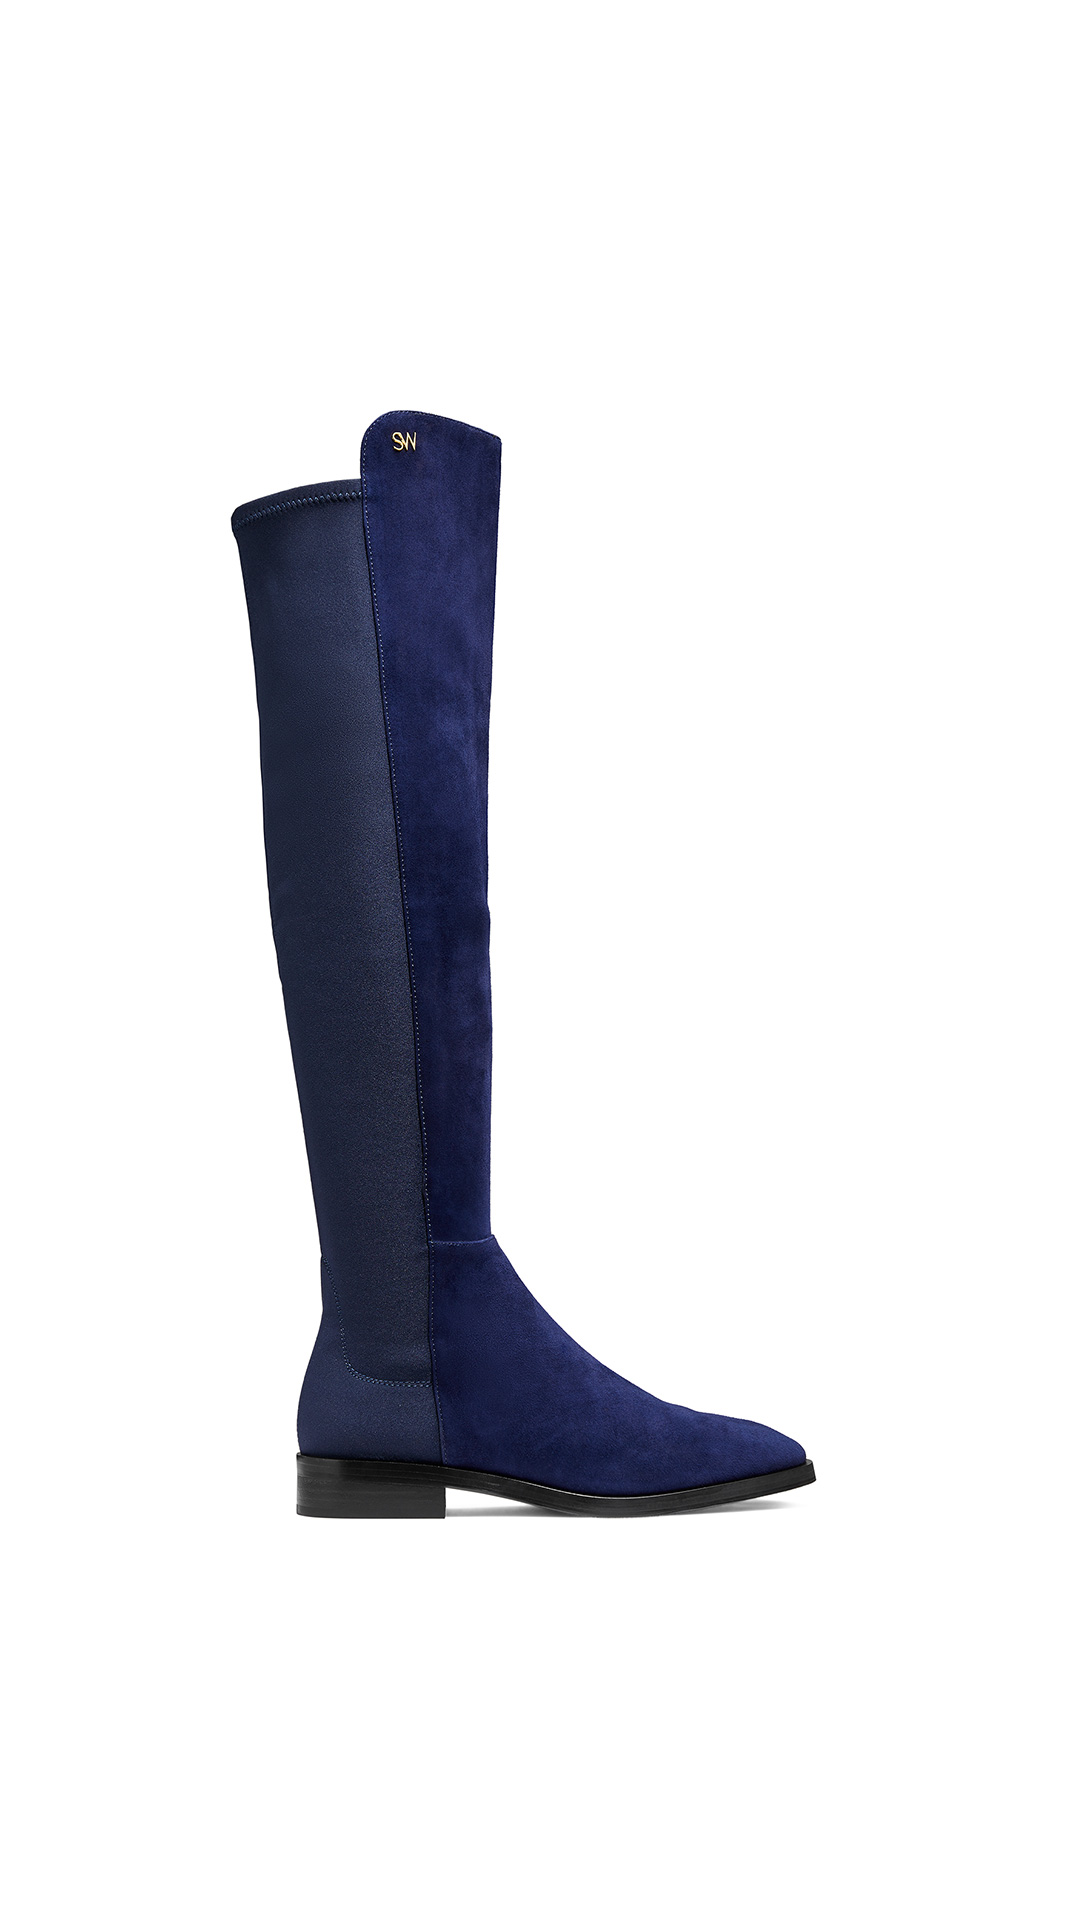 Stuart Weitzman keelan nice blue at The Bicester Village Shopping Collection